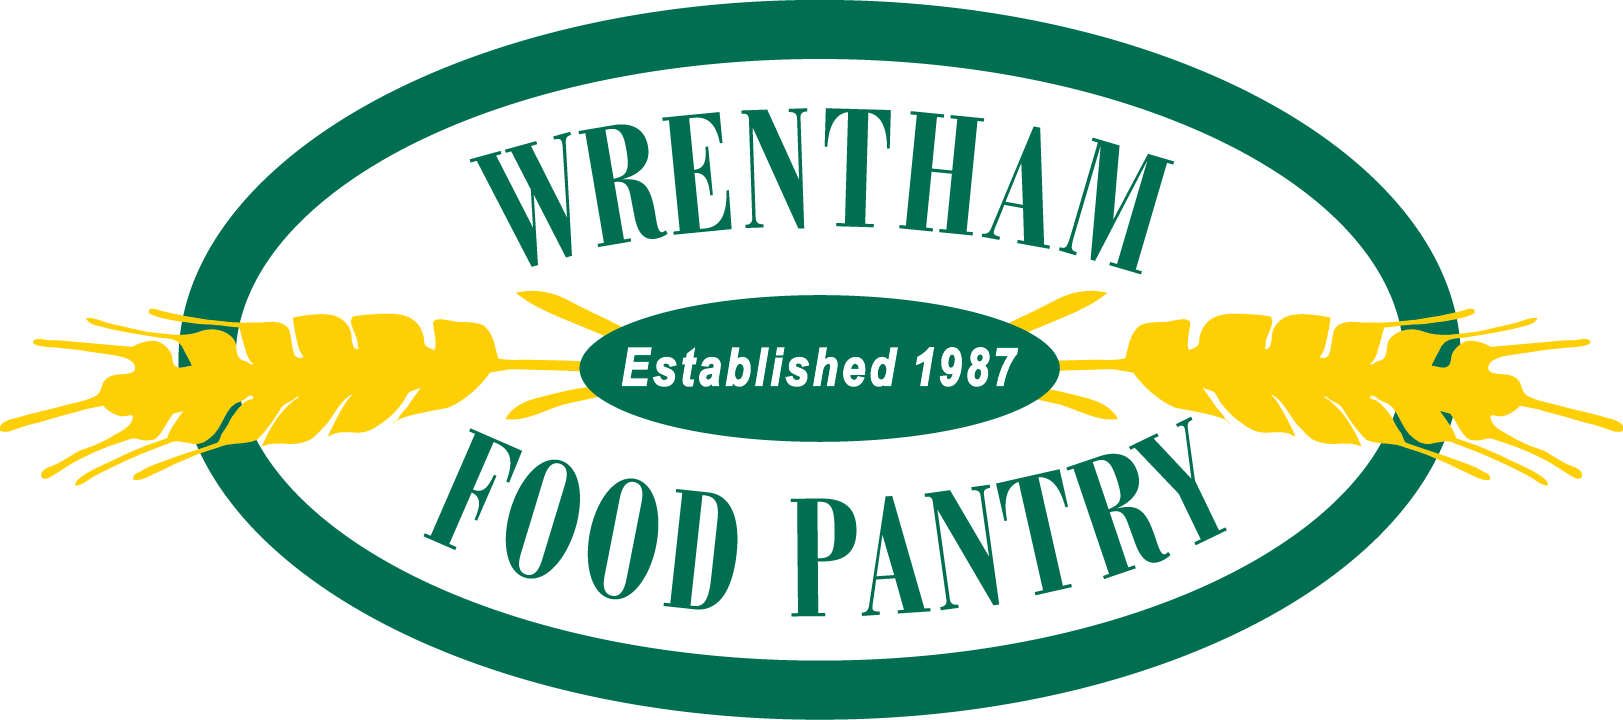 Image result for wrentham food pantry image